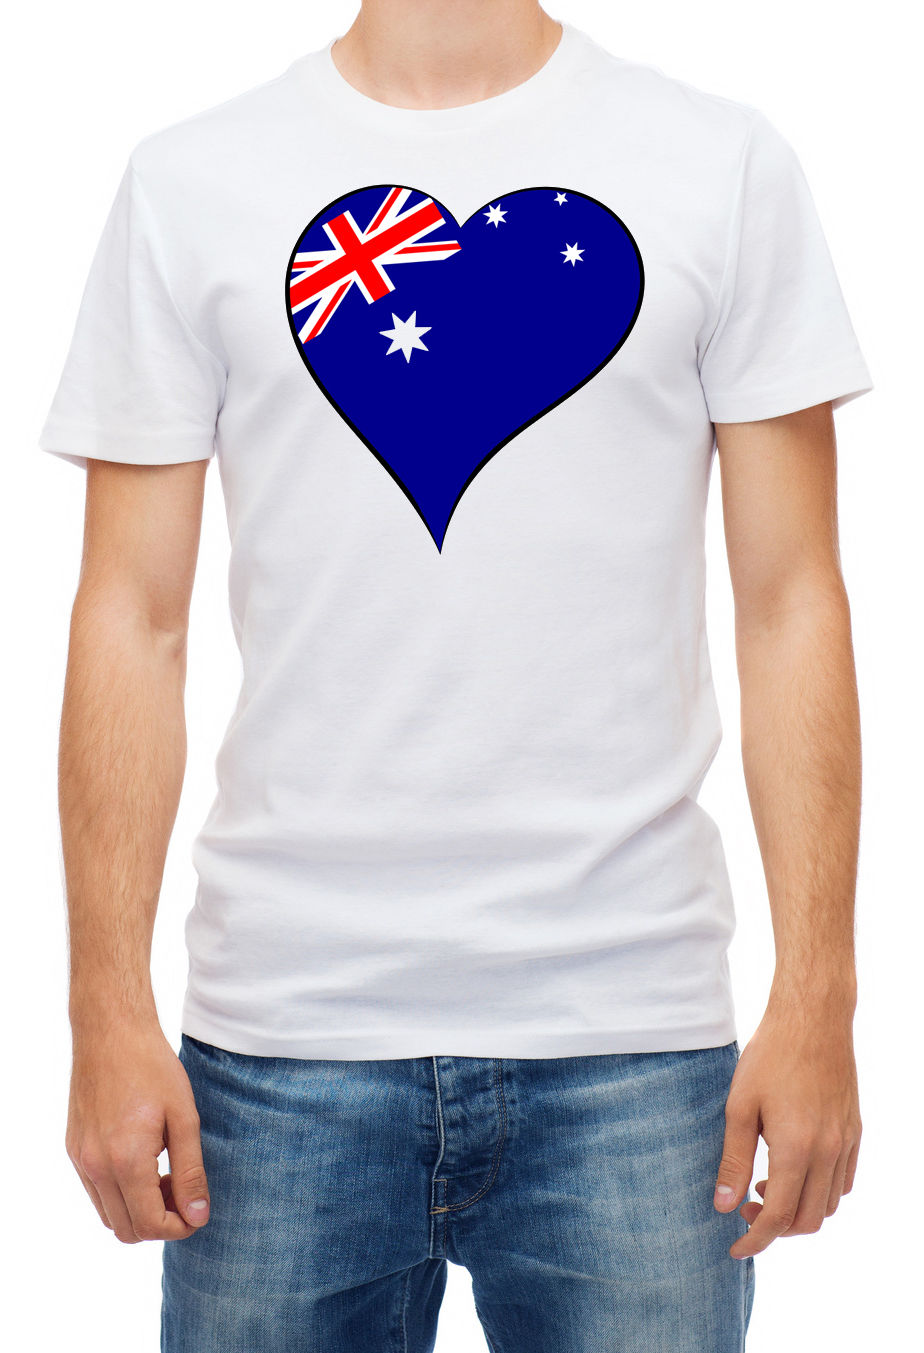 Australia T-Shirts from Spreadshirt Unique designs Easy 30 day return policy Shop Australia T-Shirts now!